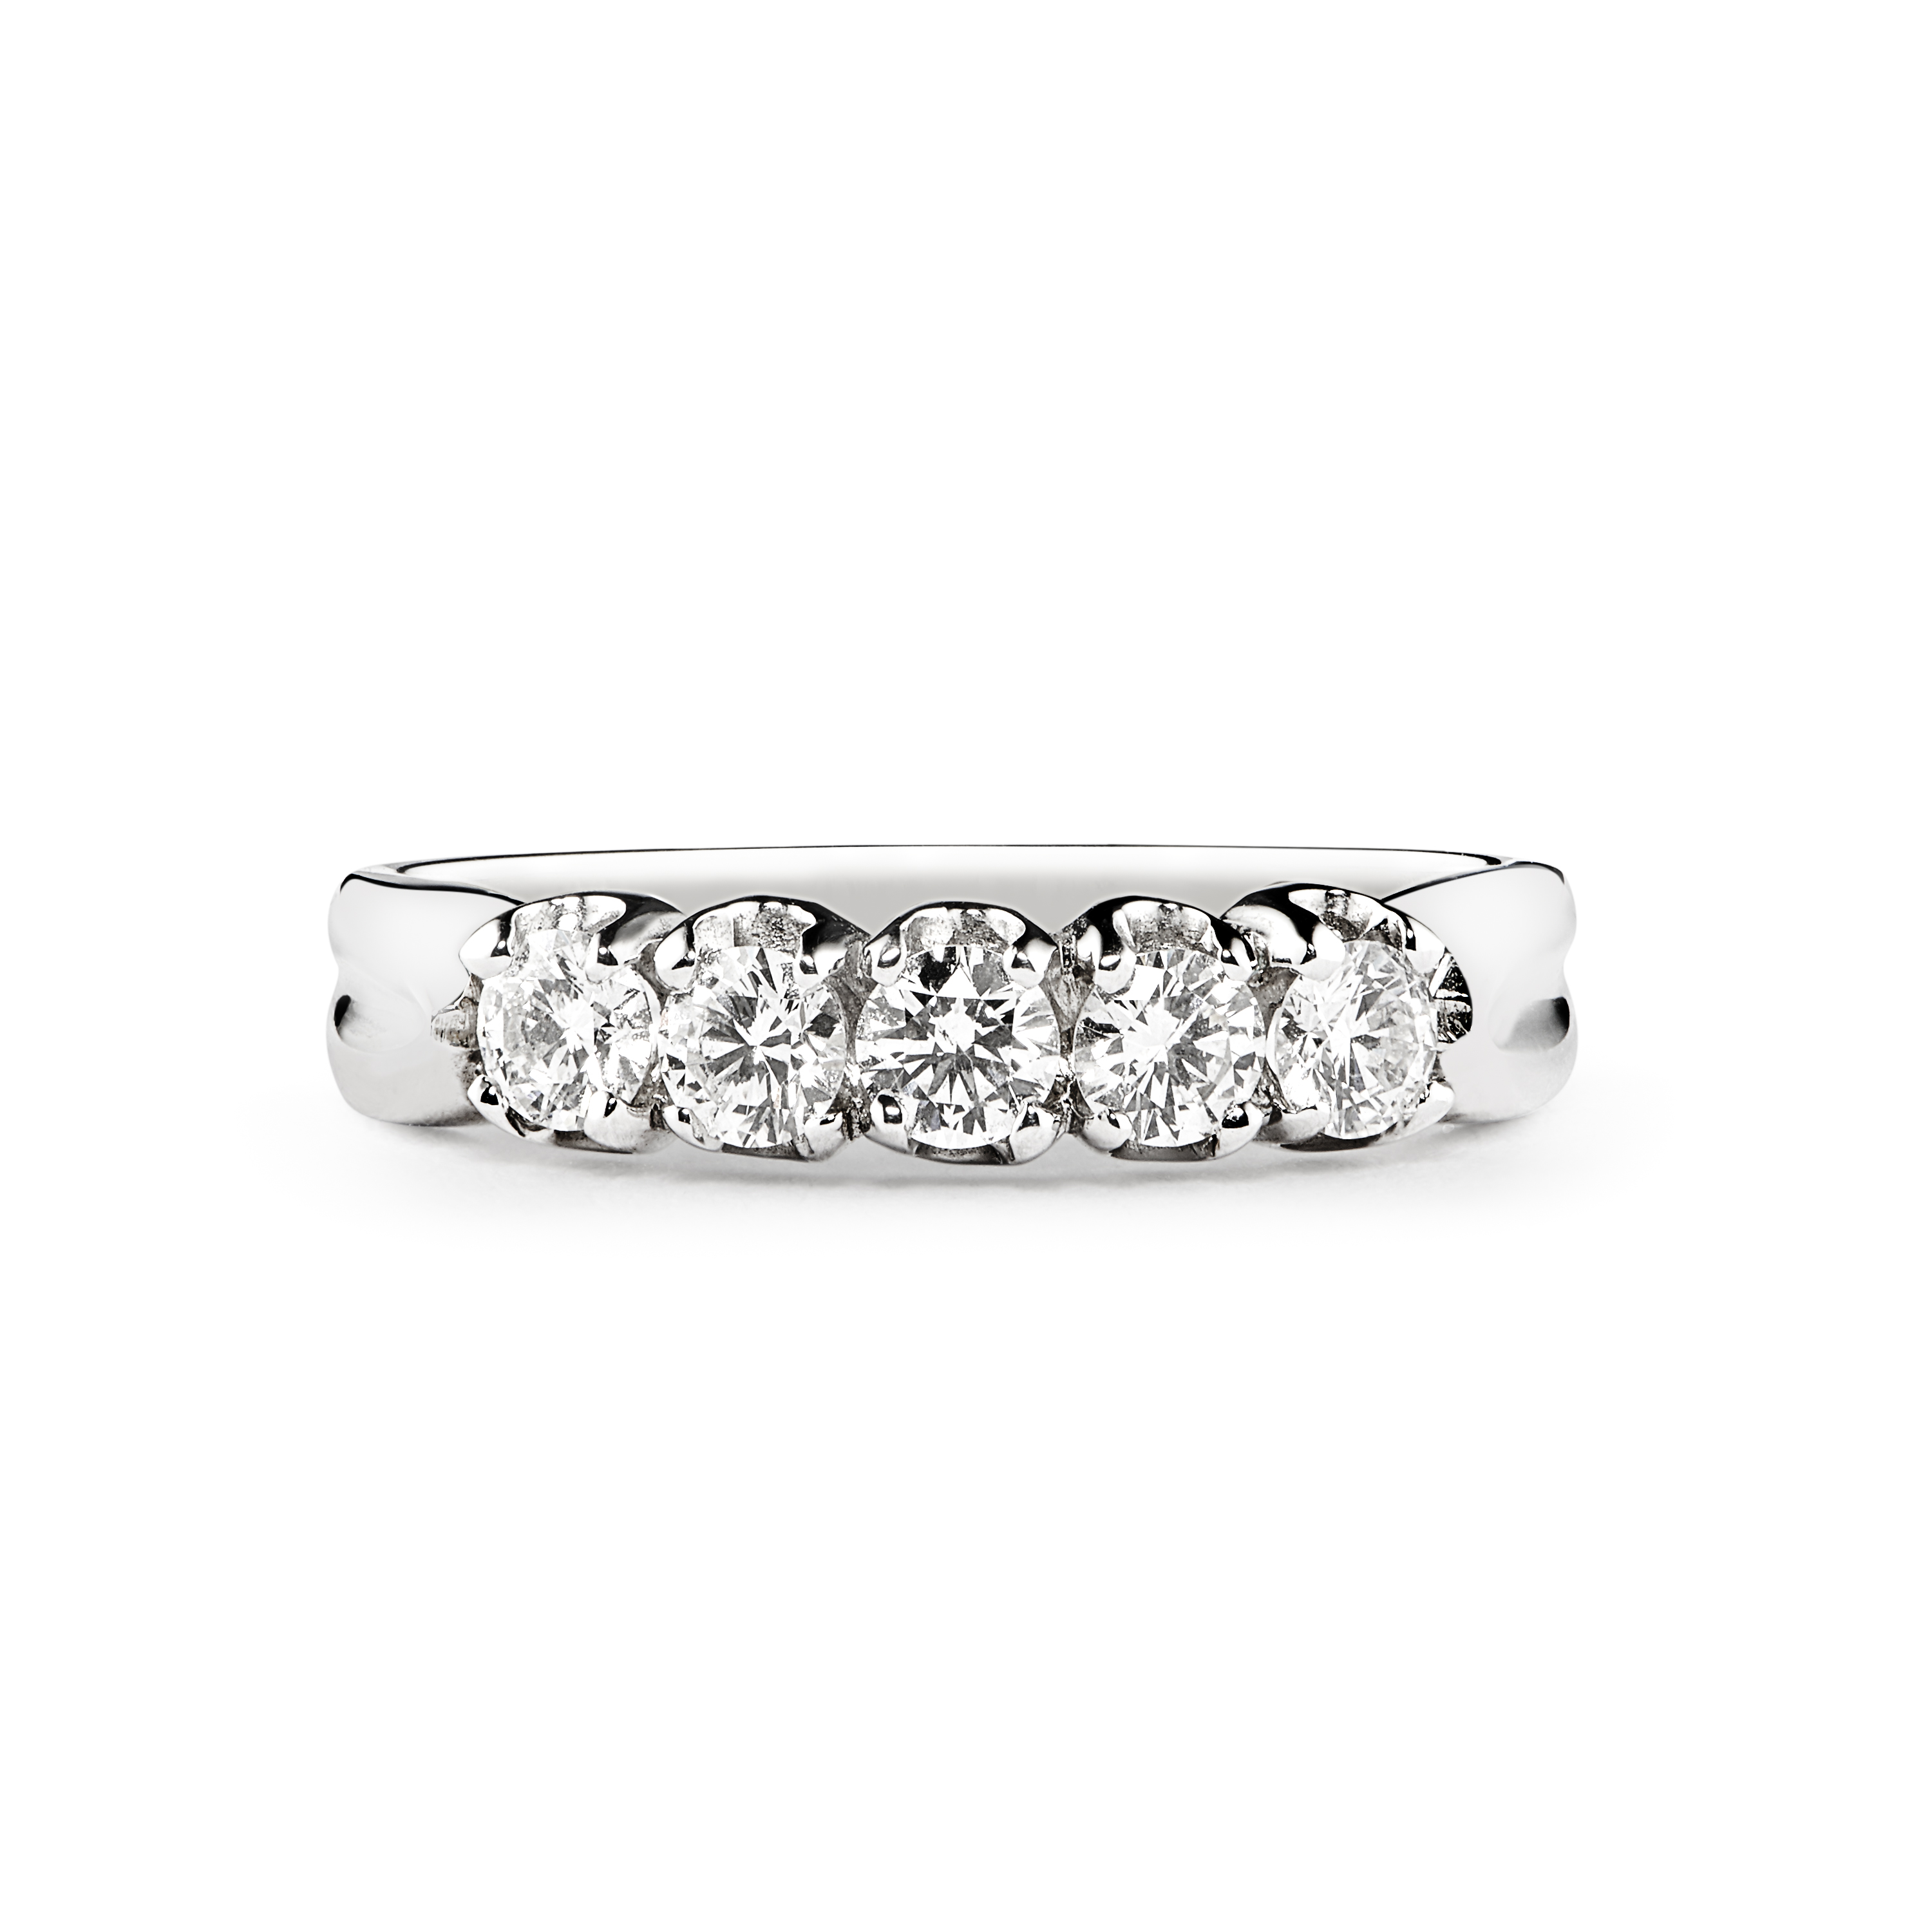 0.30ct Brilliant Cut 5 Stone Diamond Ring